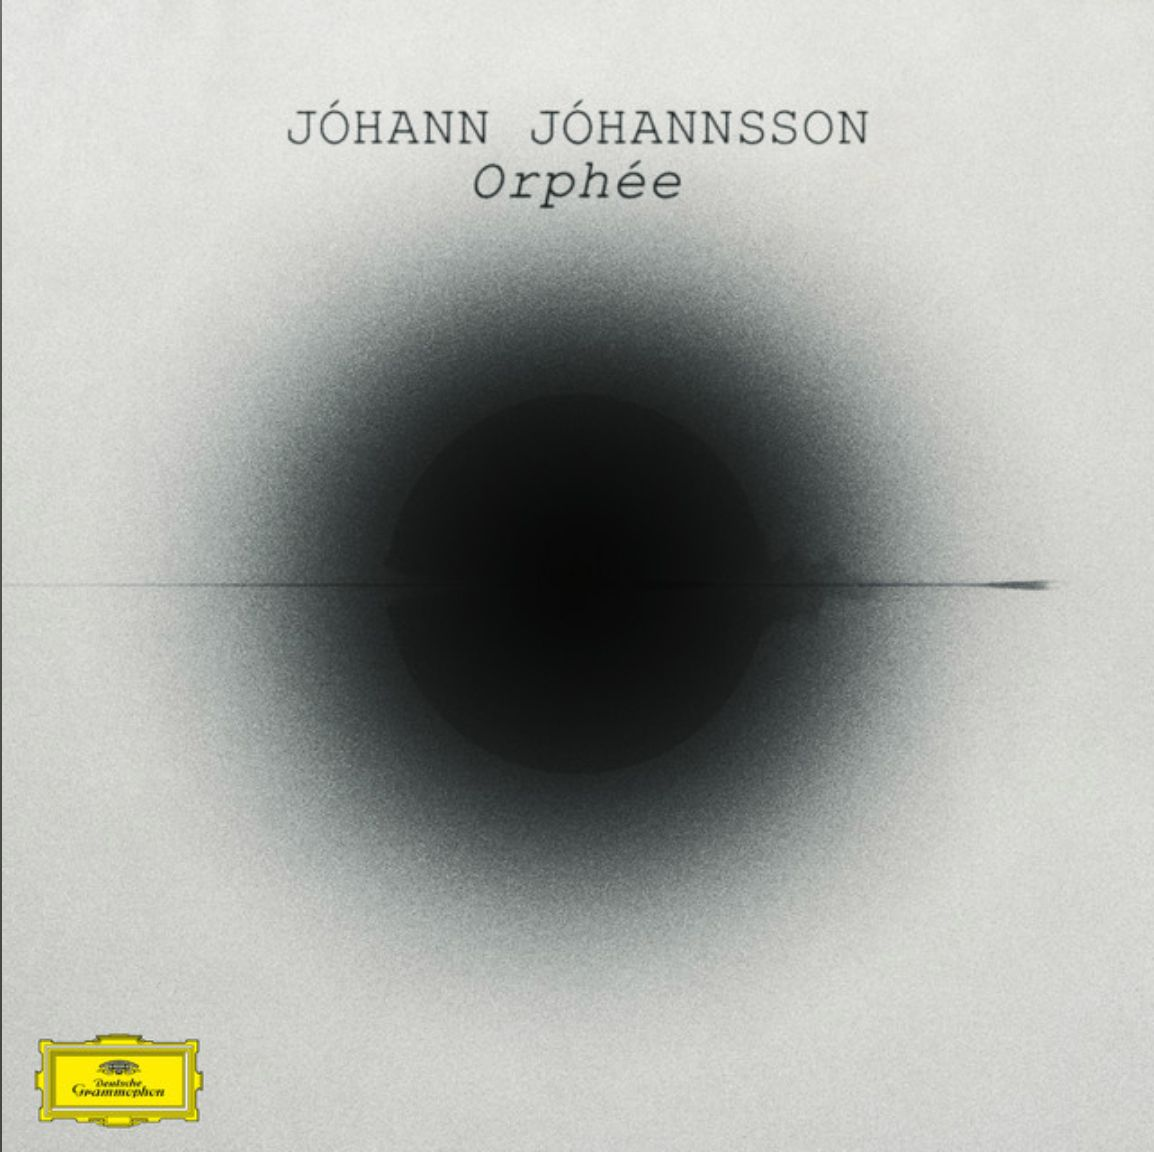 johann johansson song flight from the city